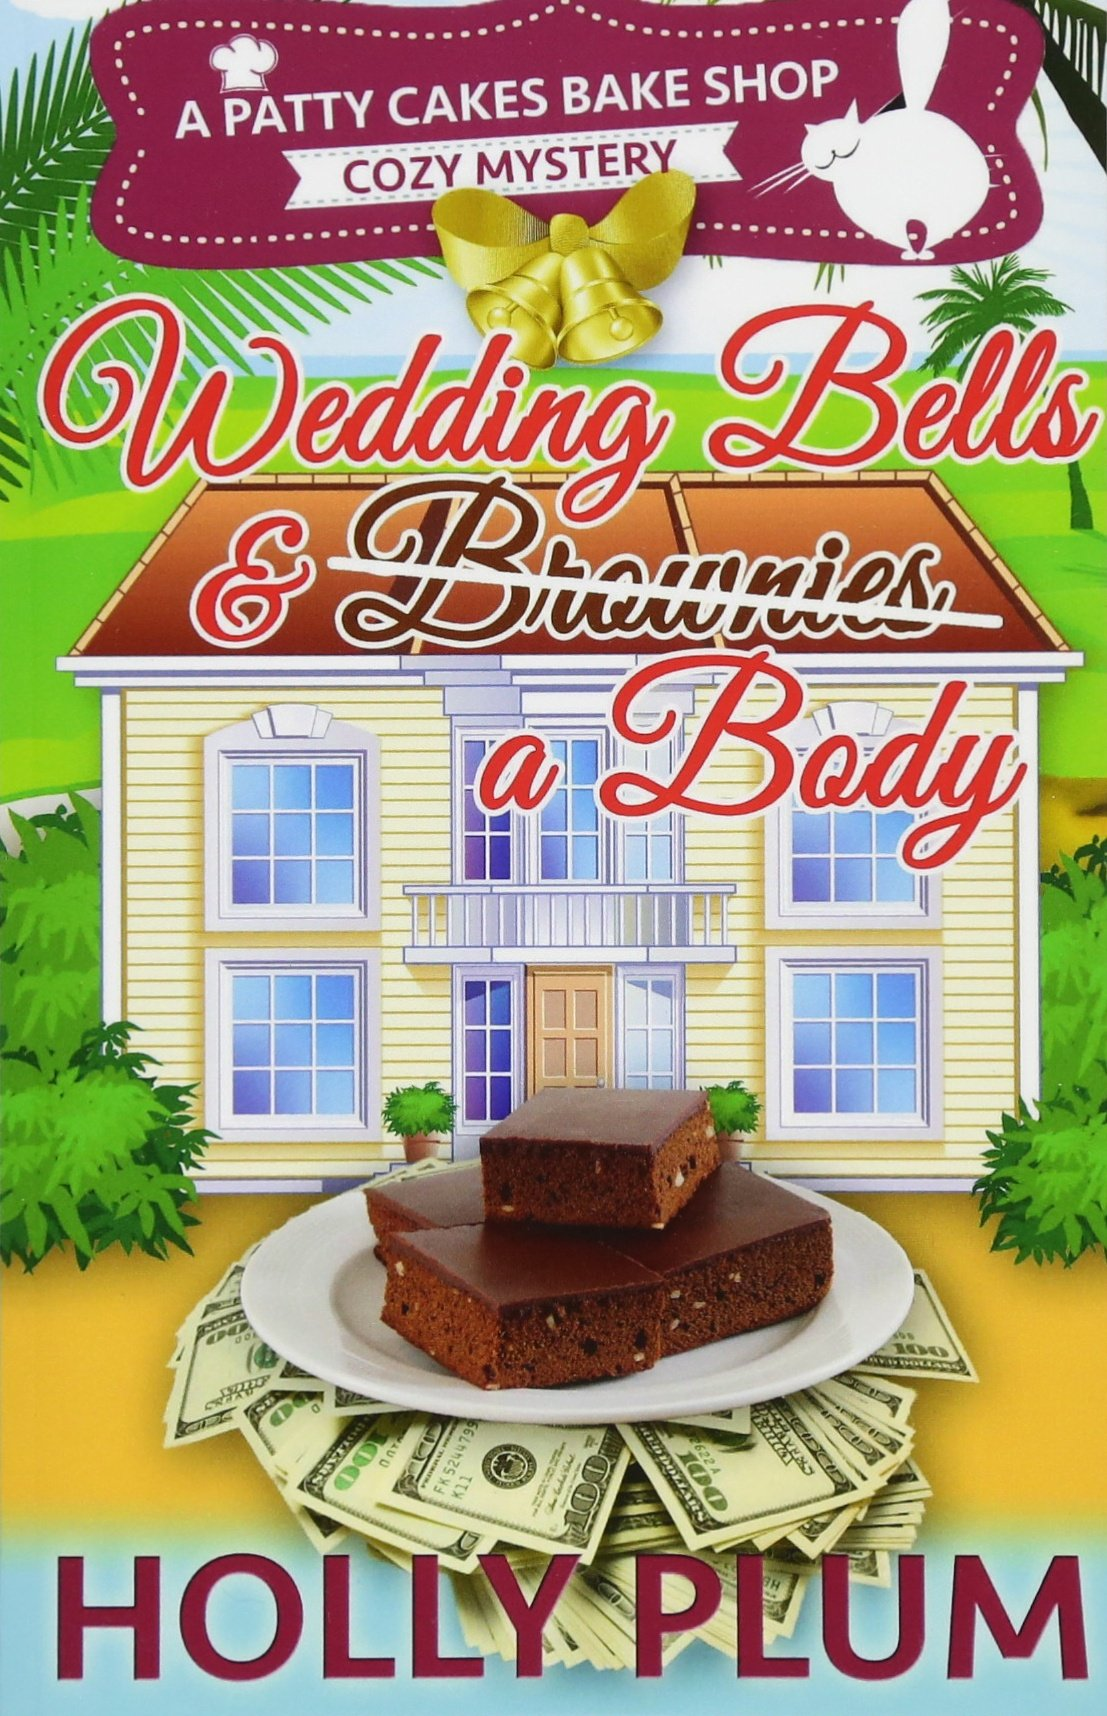 Download Wedding Bells and a Body (A Patty Cakes Bake Shop Cozy Mystery Series) (Volume 5) pdf epub